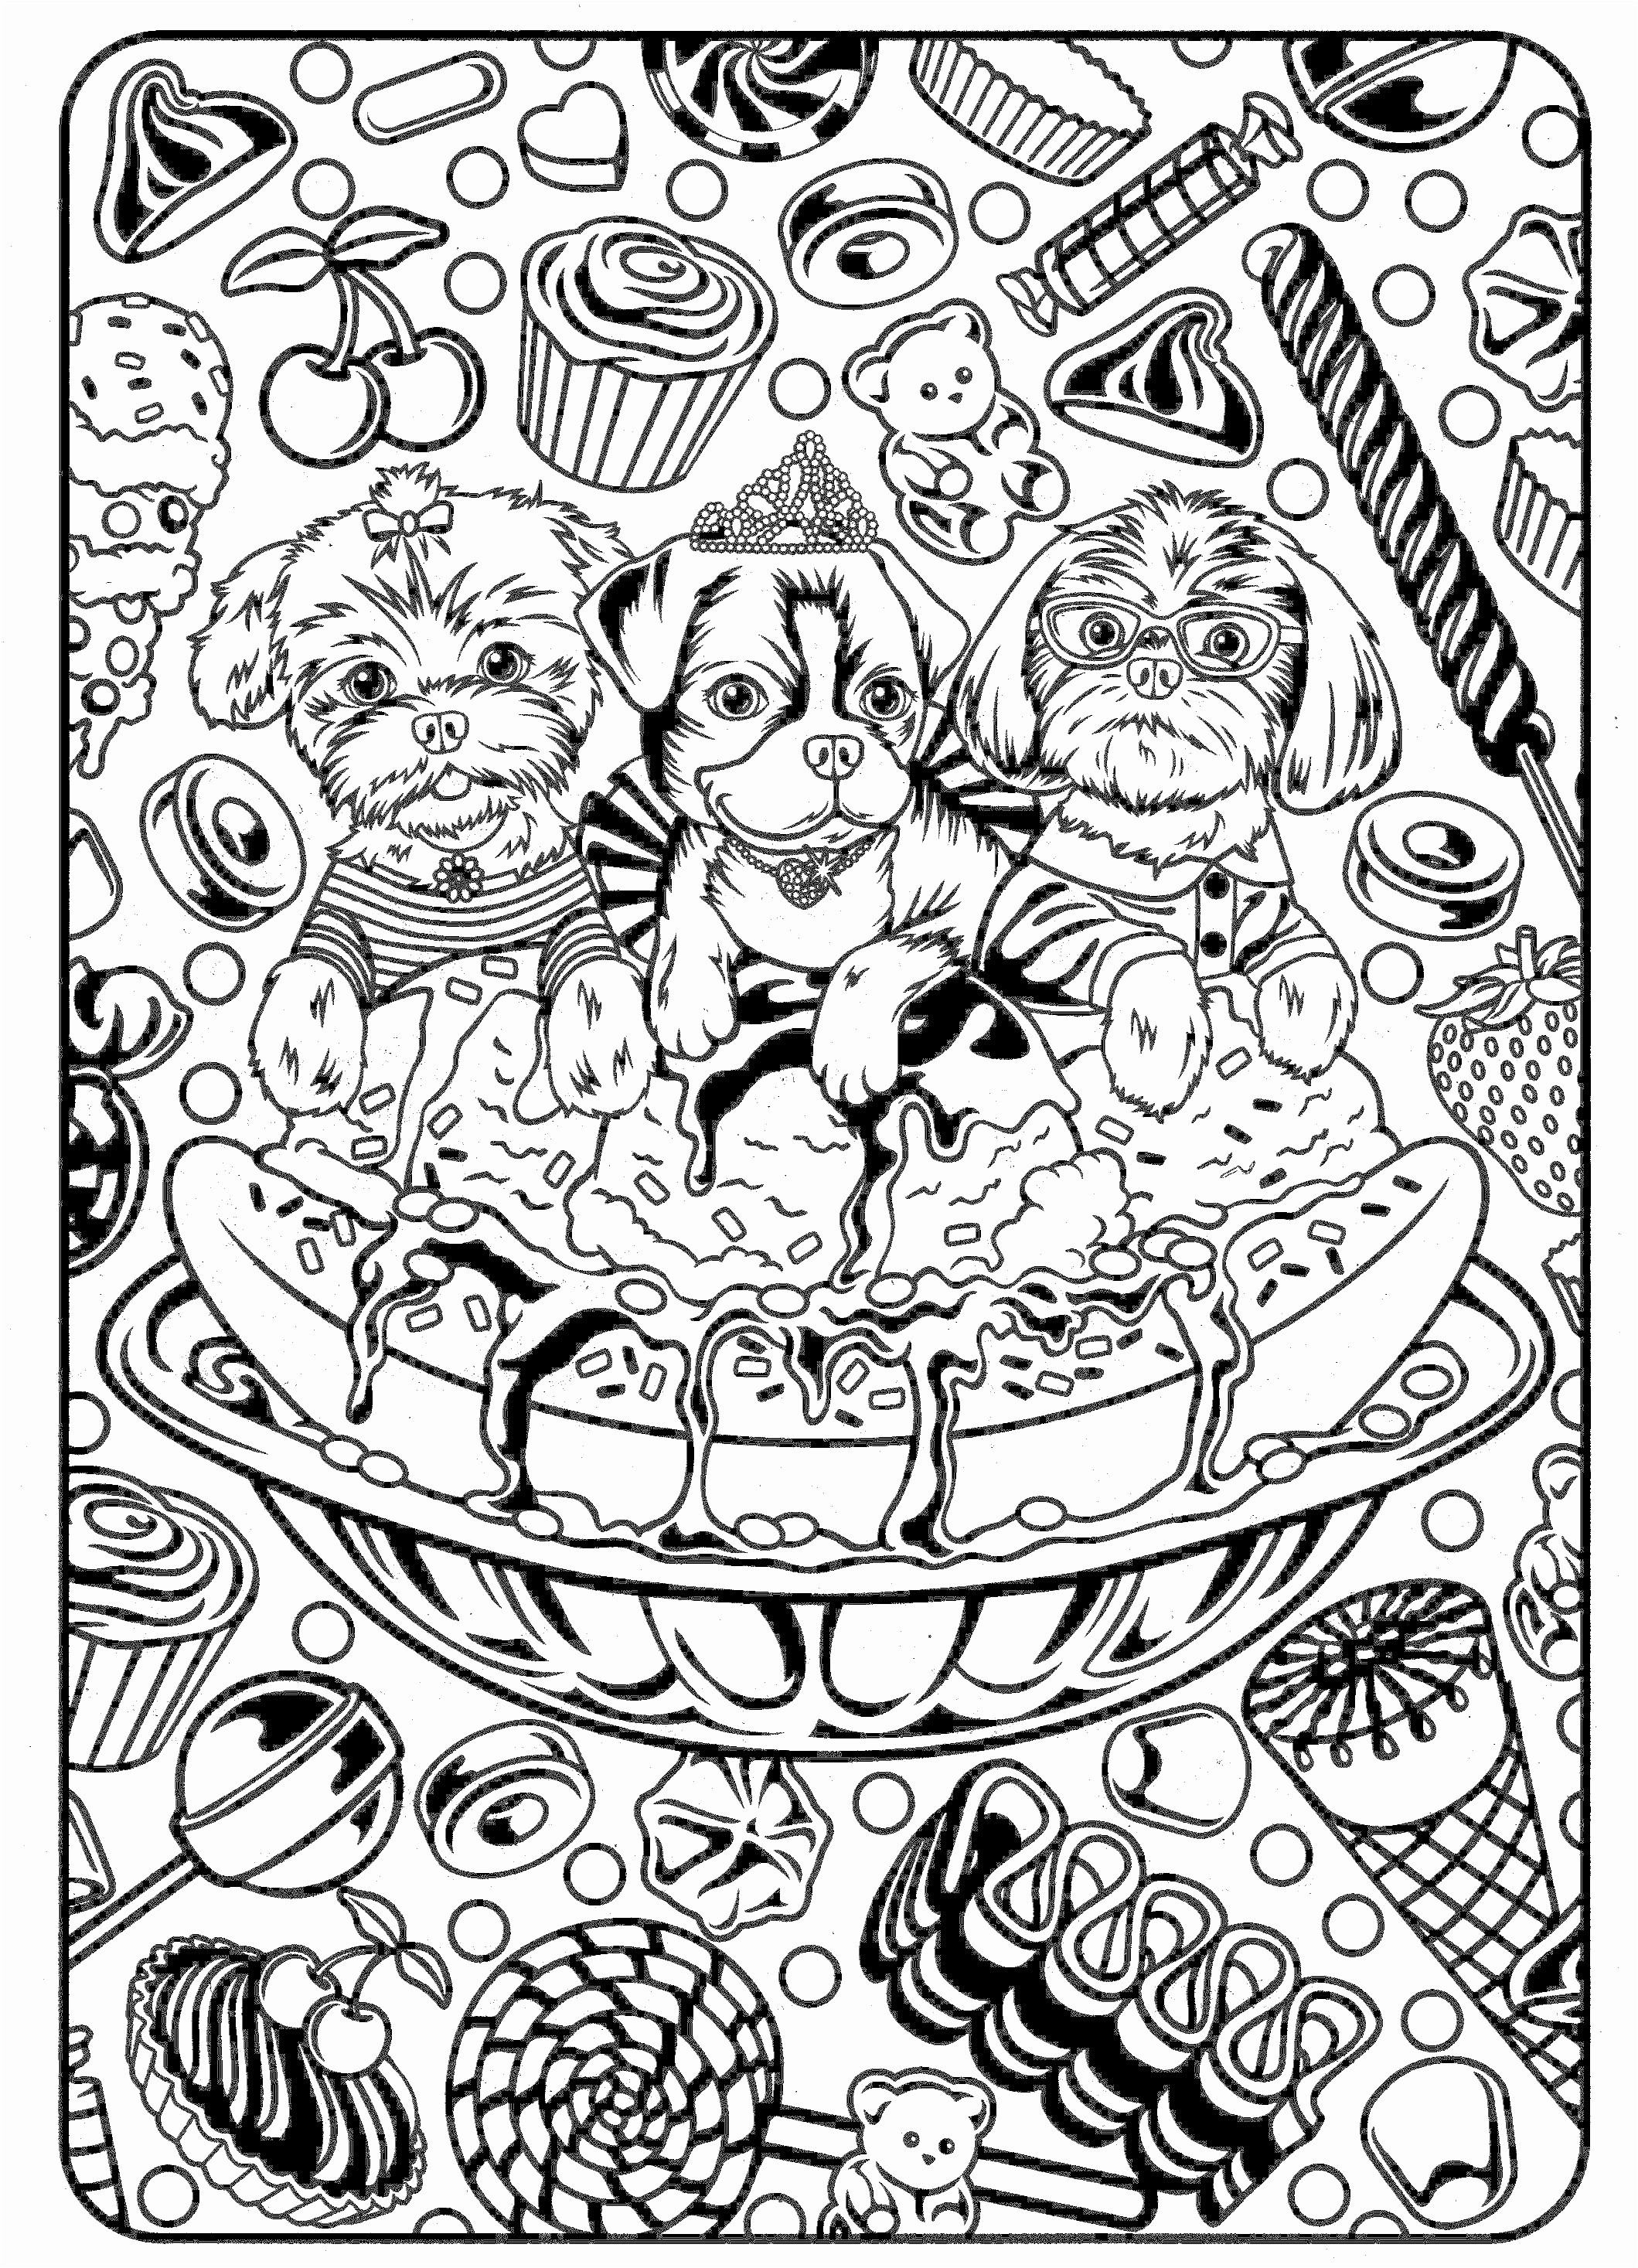 cute halloween coloring pages for kids Collection-Elegant Cute Halloween Coloring Pages Coloring Pages Ideas Halloween for Kids 16-o